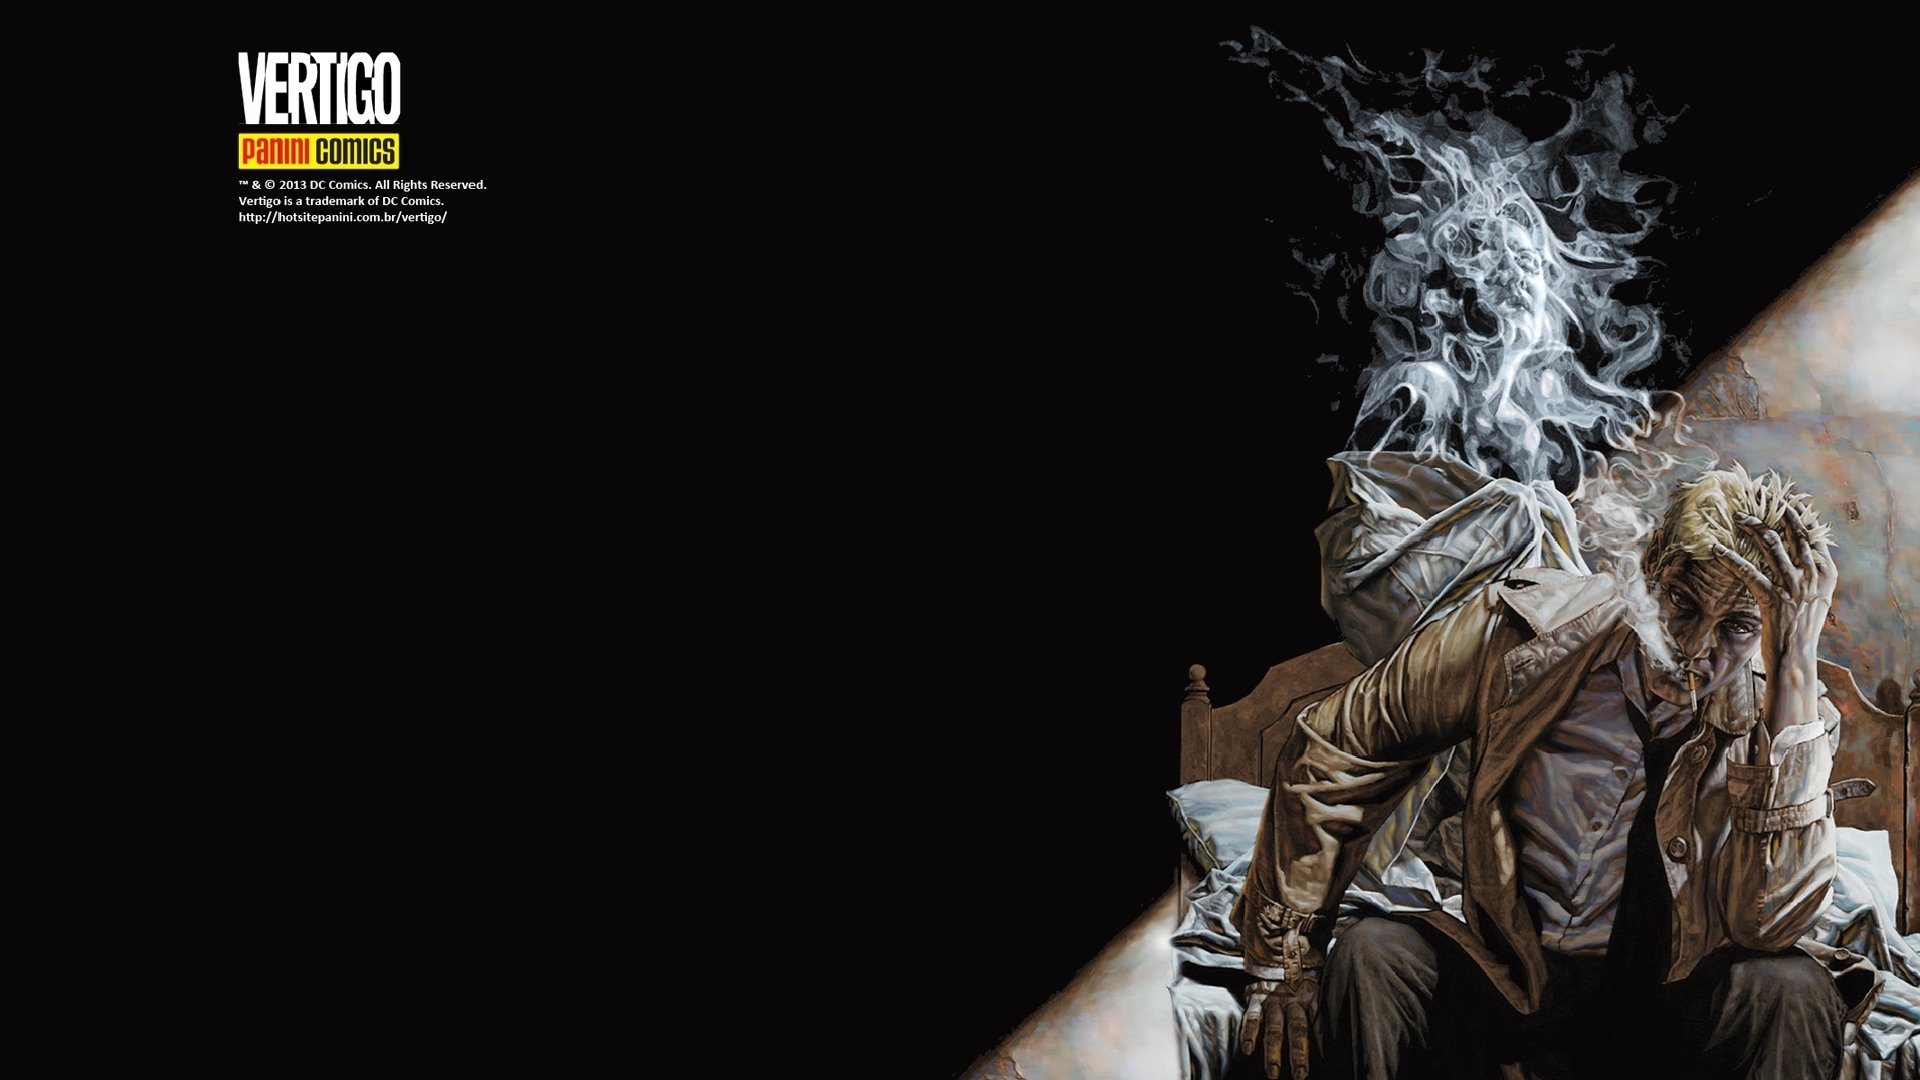 hellblazer computer wallpapers desktop backgrounds